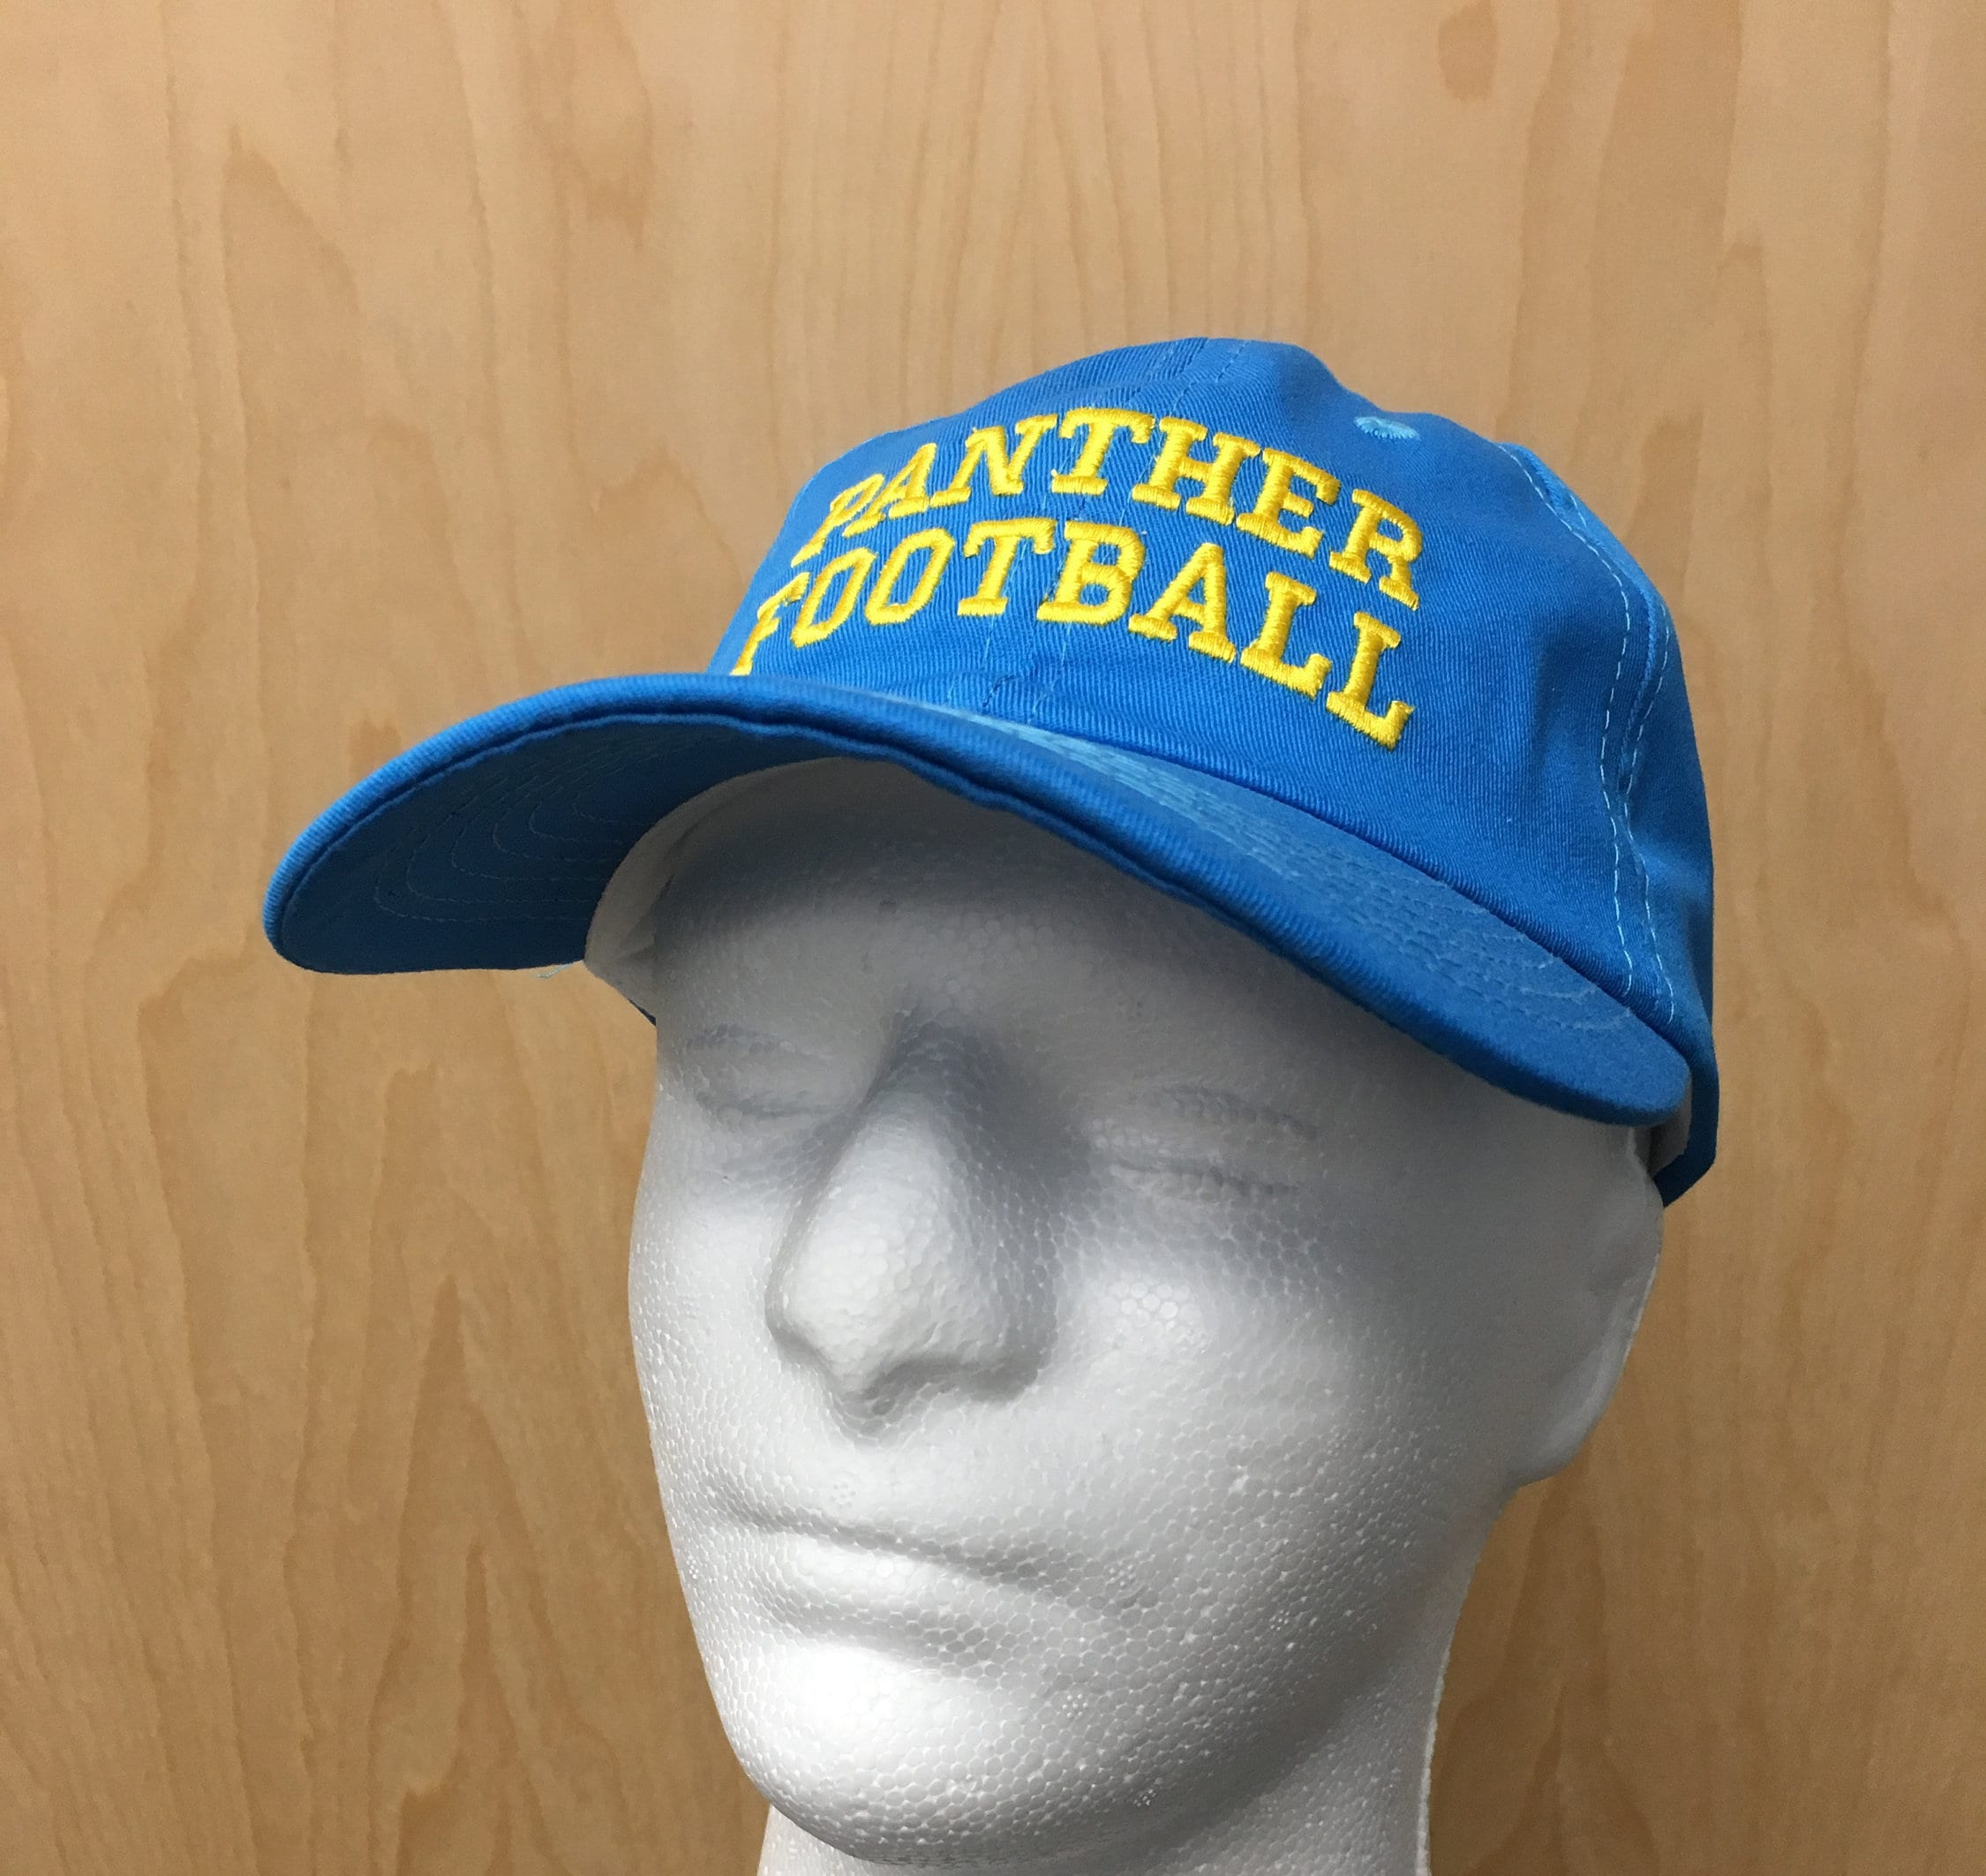 panther football hat eric taylor baseball cap halloween | etsy